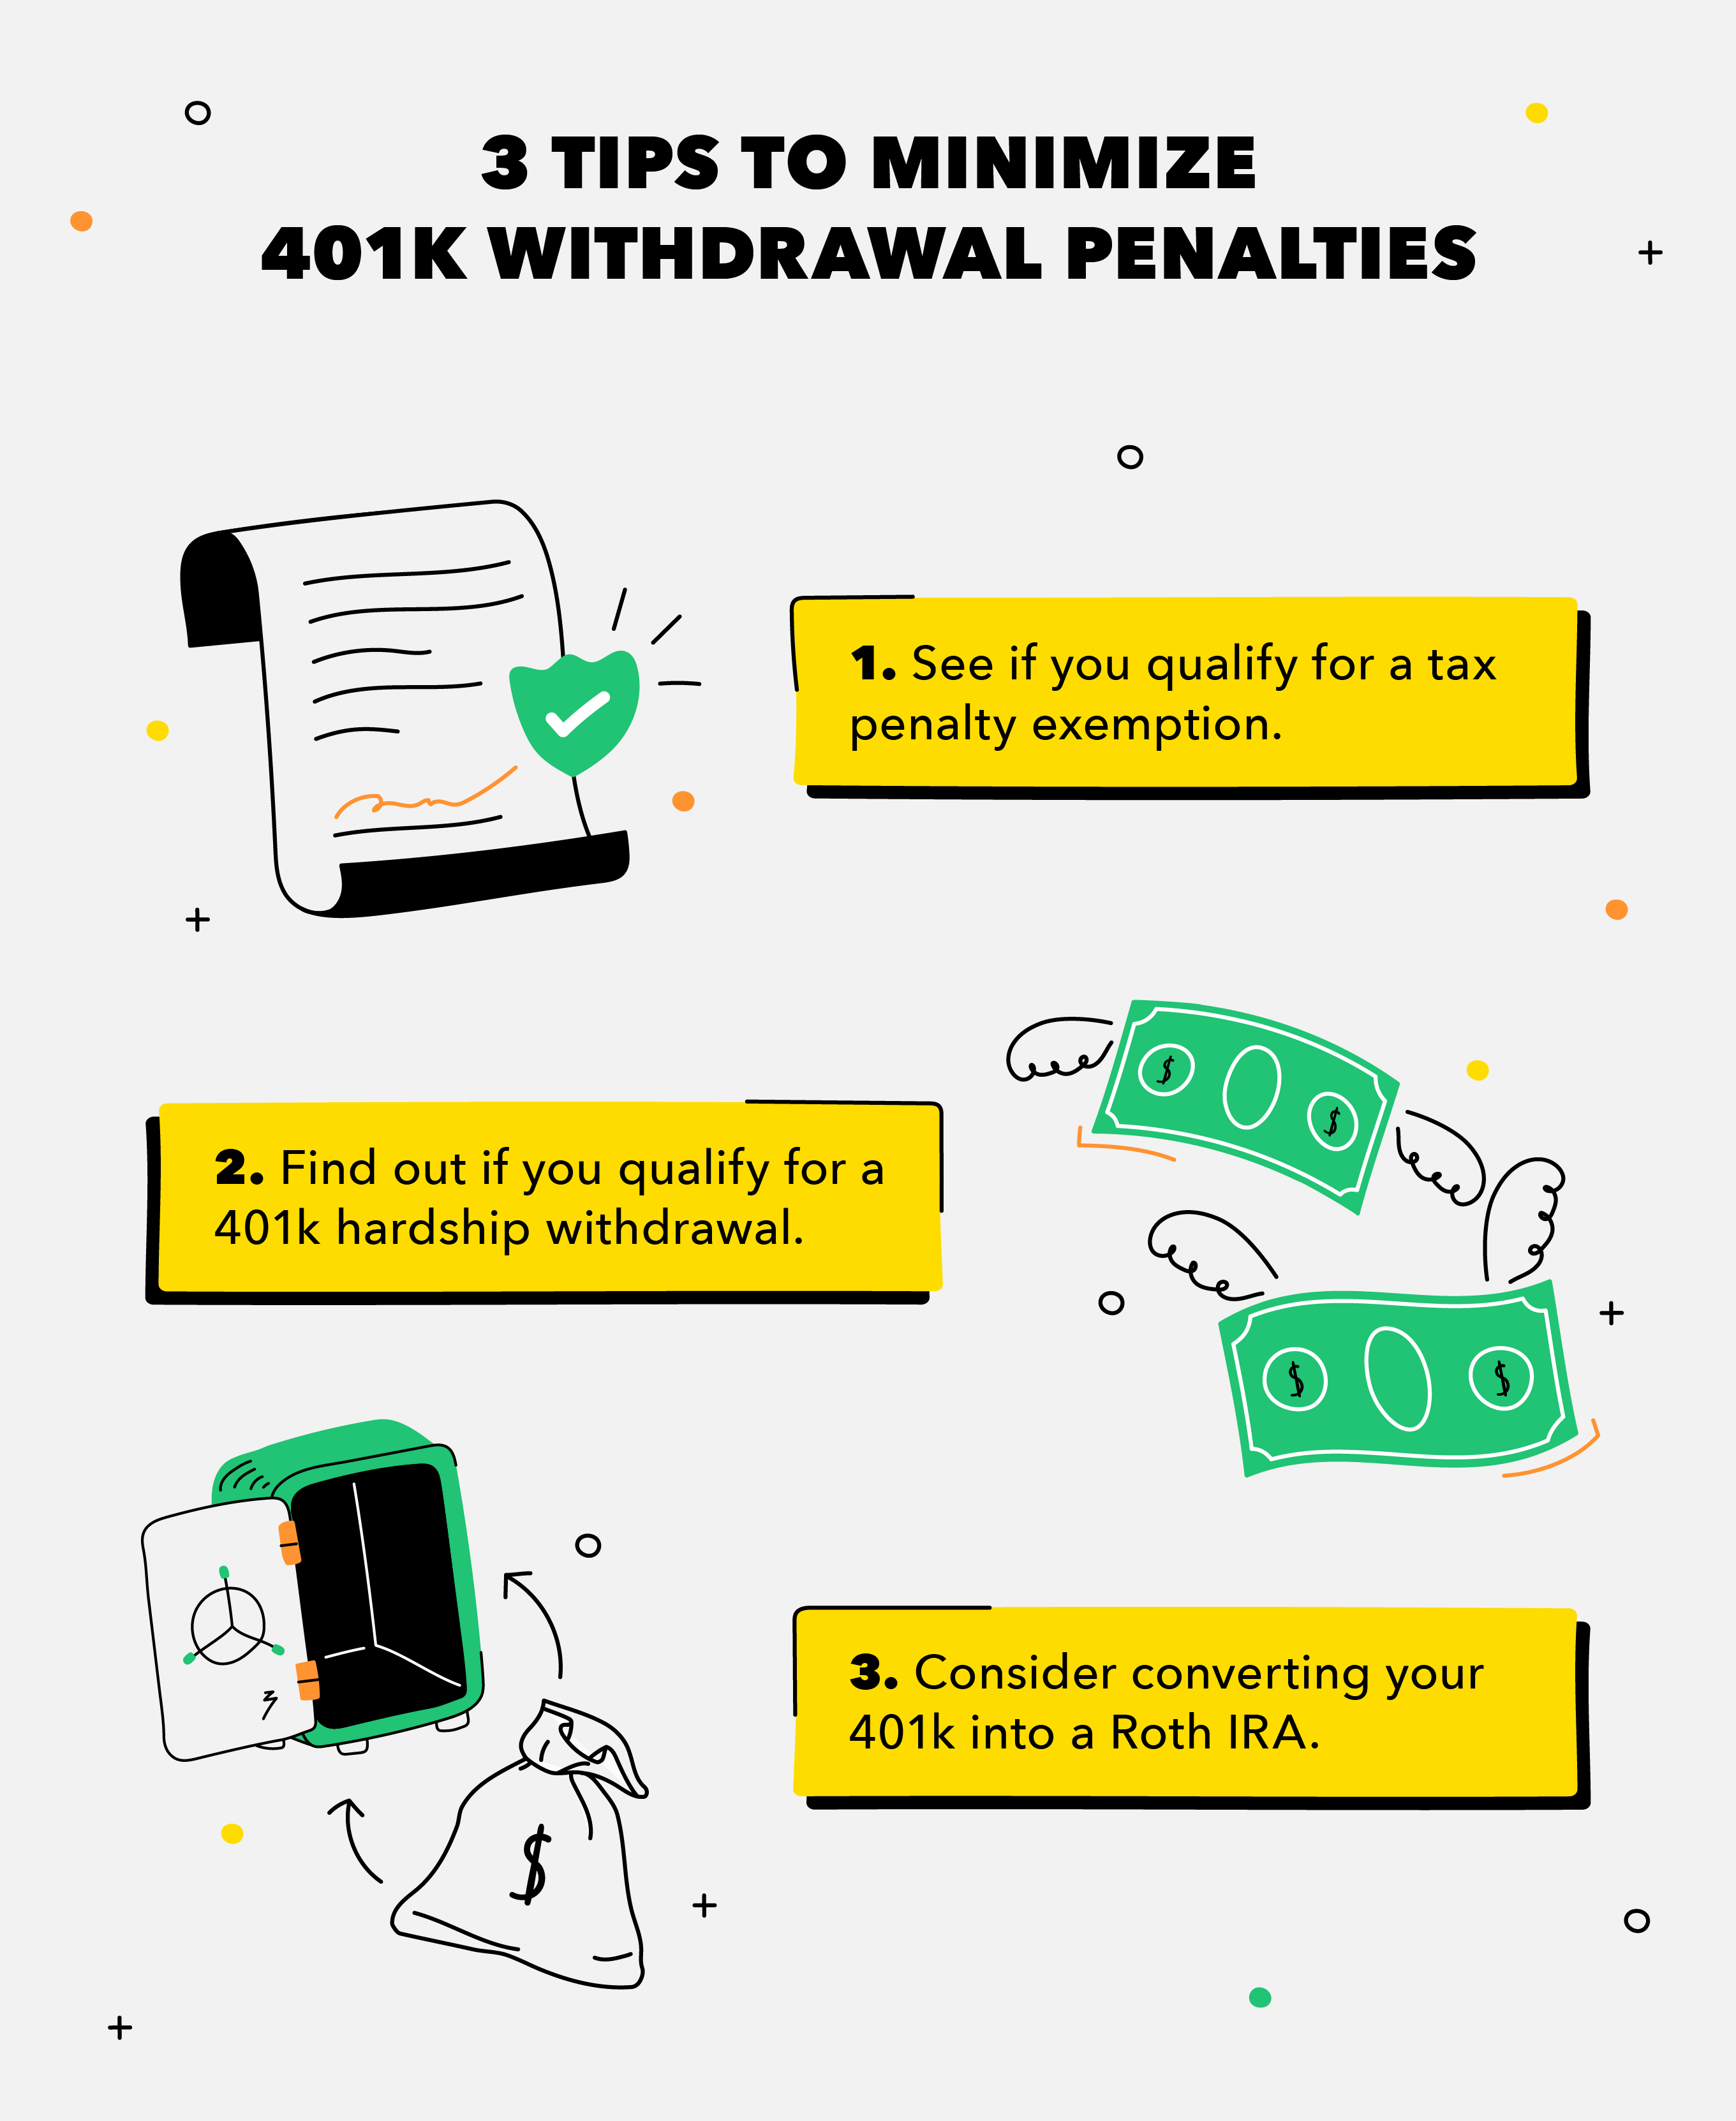 Tips to minimize 401,000 withdrawal penalties